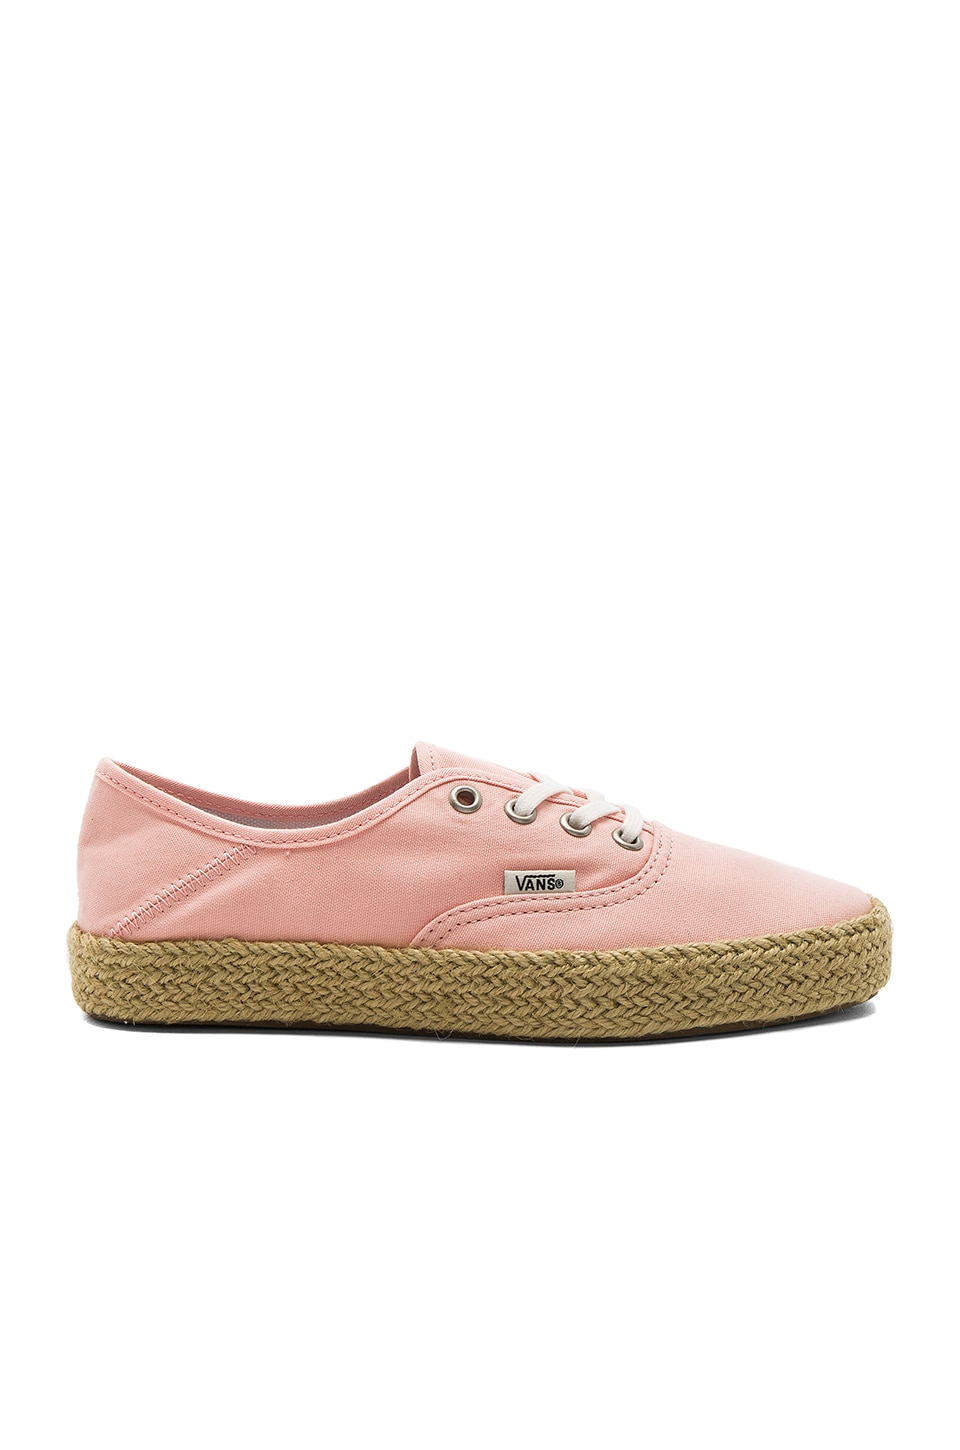 Vans Authentic Espadrille in Tropical Peach